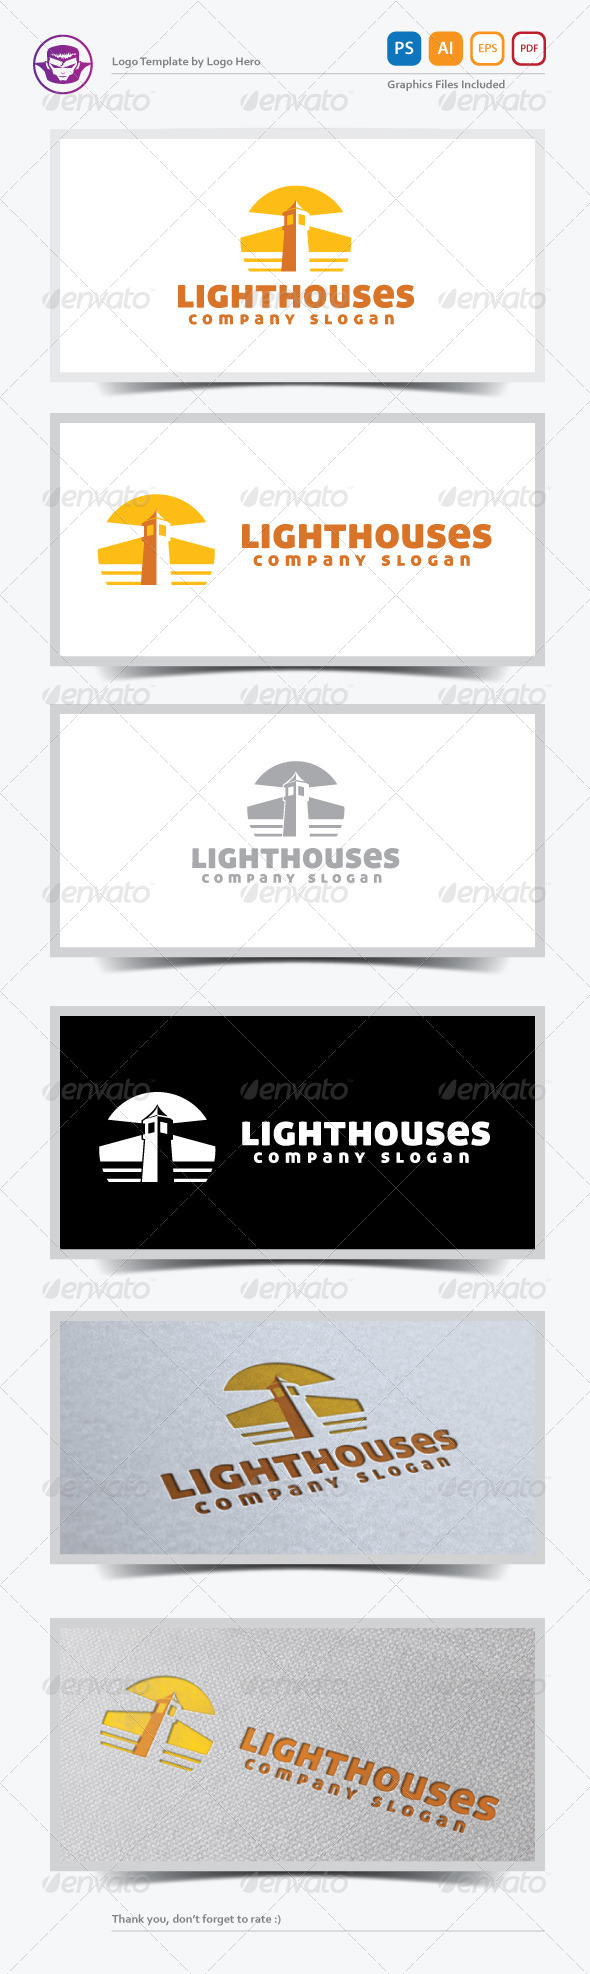 GraphicRiver Lighthouses Logo Template 5471538